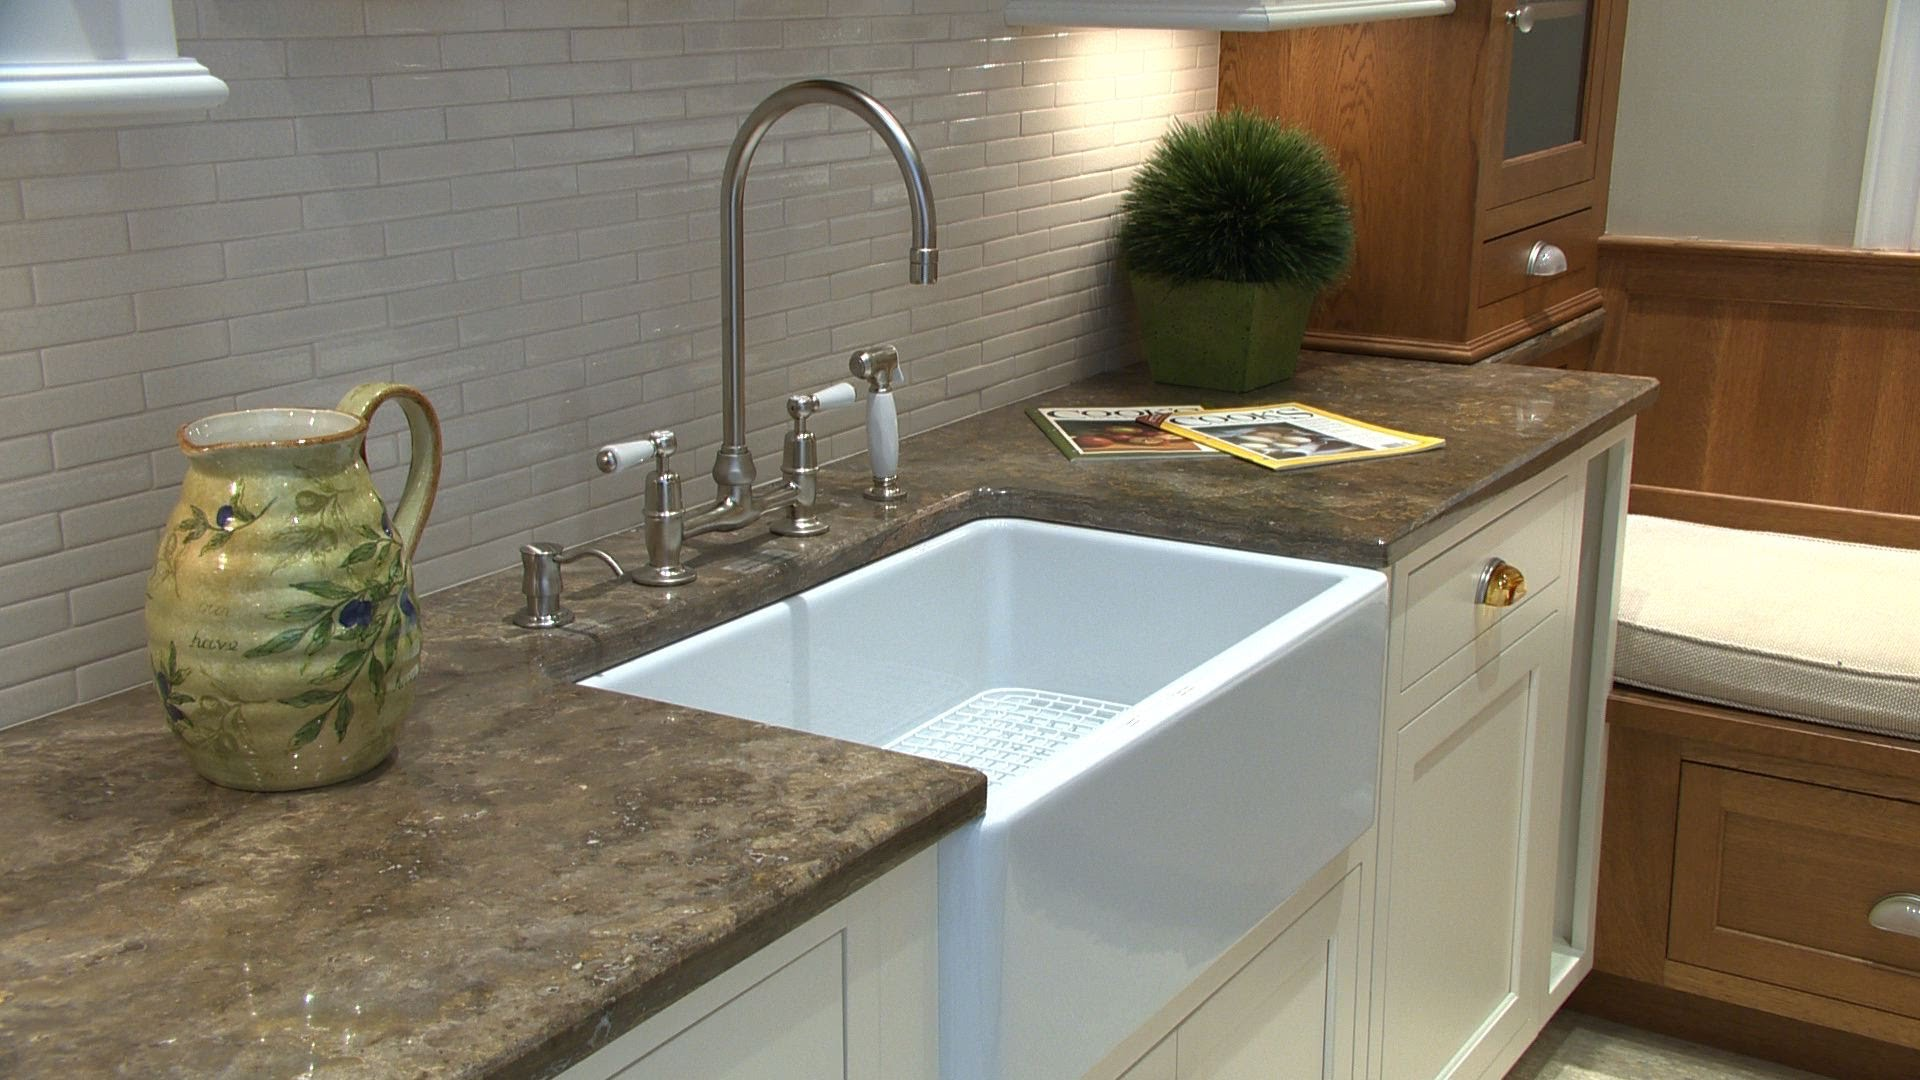 Odors coming from kitchen sink could mean trouble